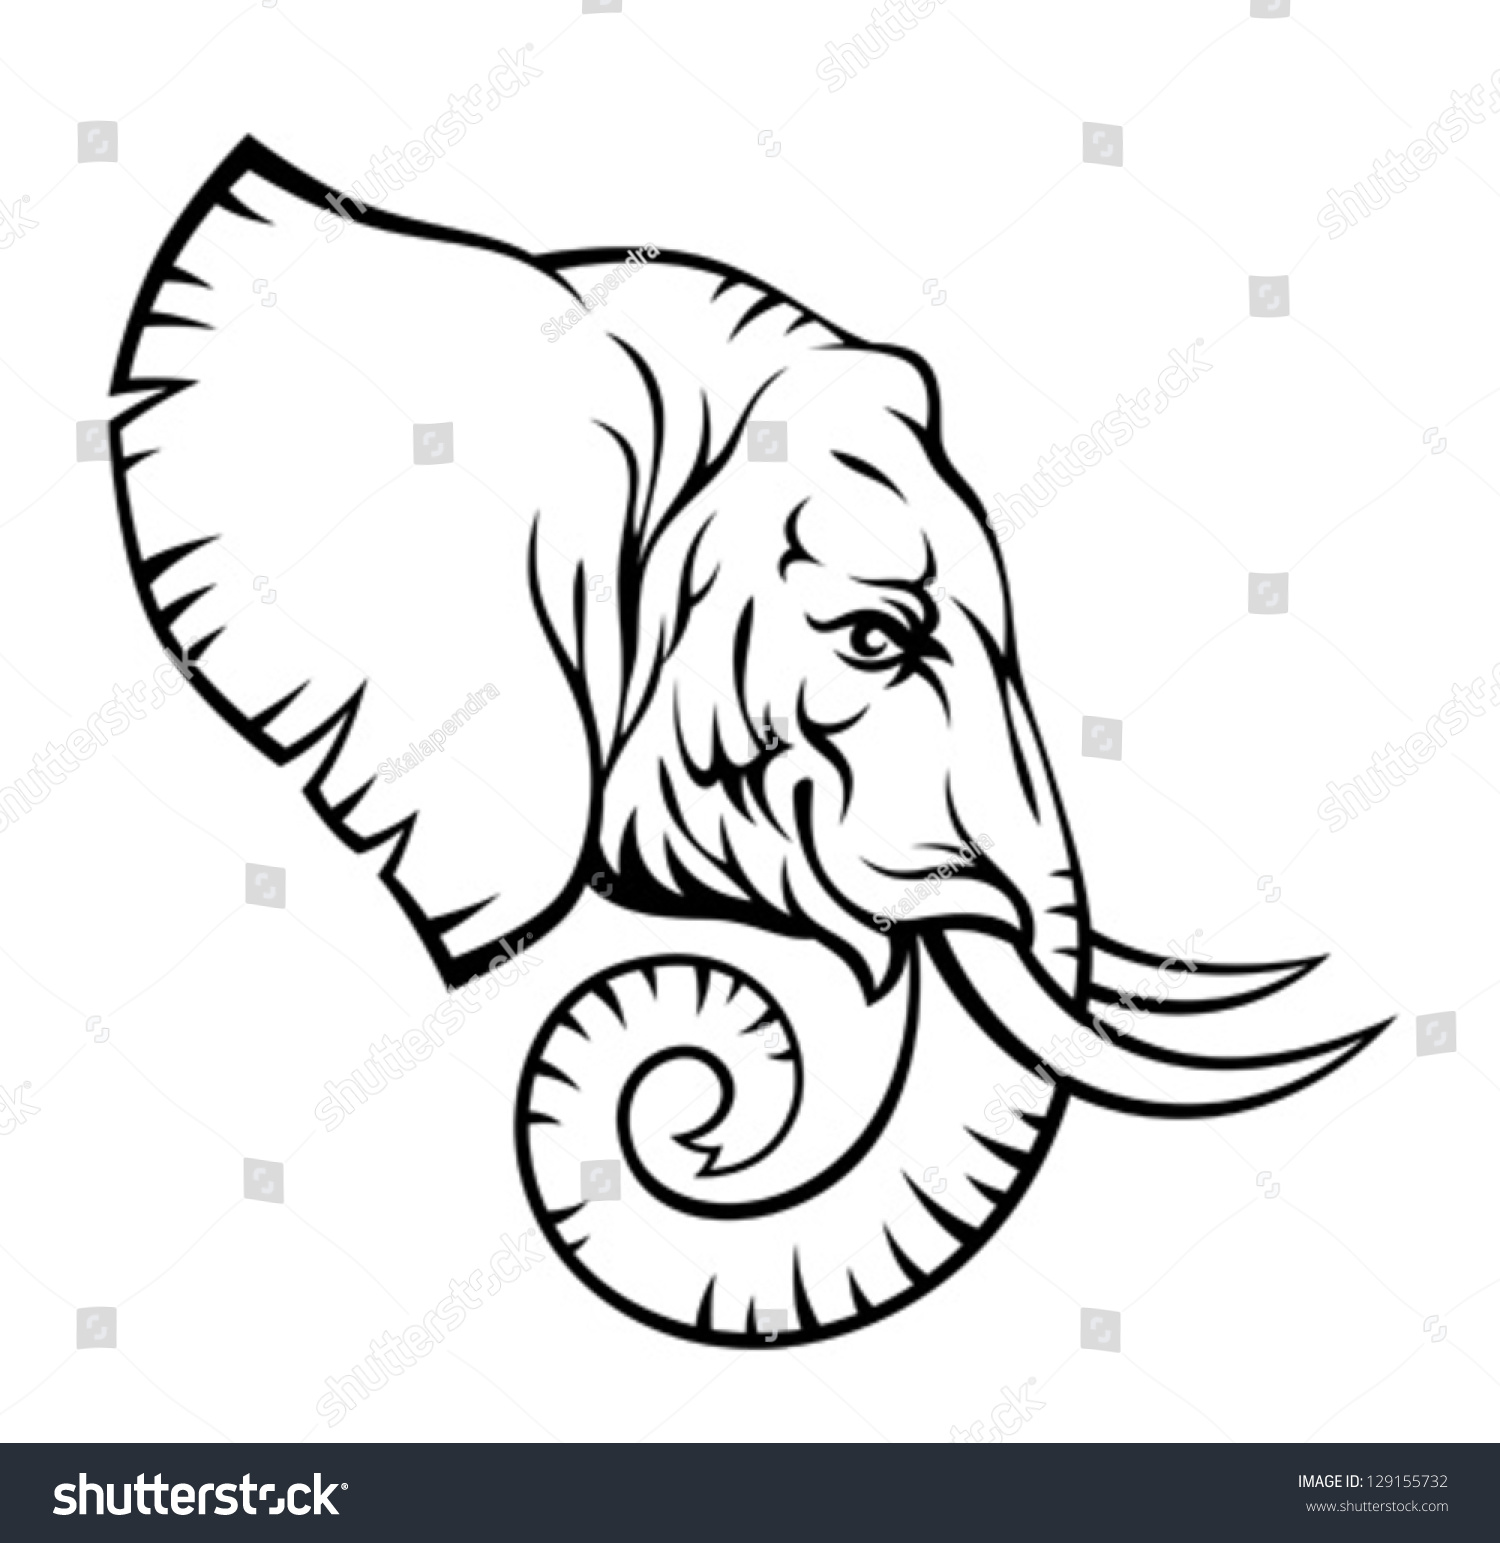 Contour Line Drawing Elephant : Elephant head stock vector shutterstock